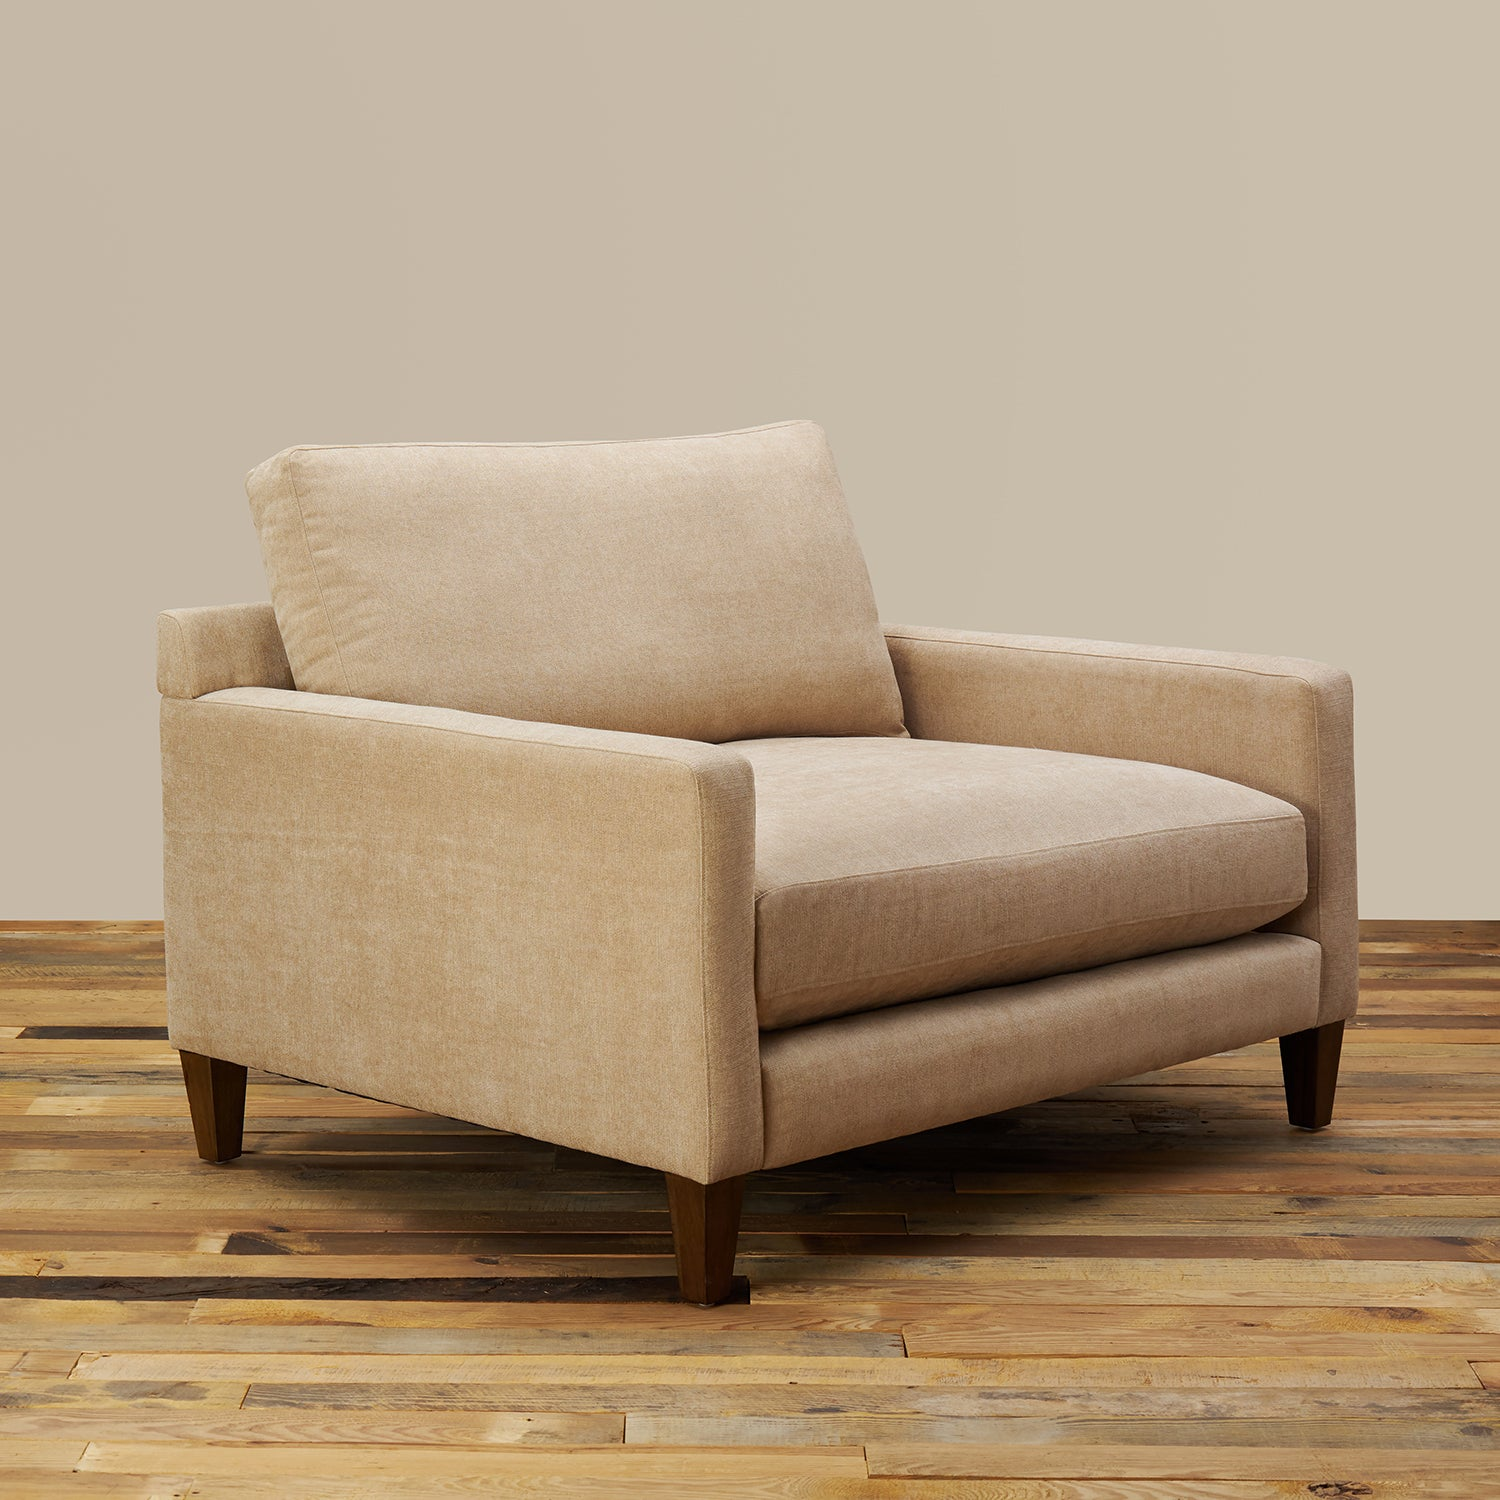 Pleasing Romo Oversized Lounge Chair With Ottoman Gmtry Best Dining Table And Chair Ideas Images Gmtryco